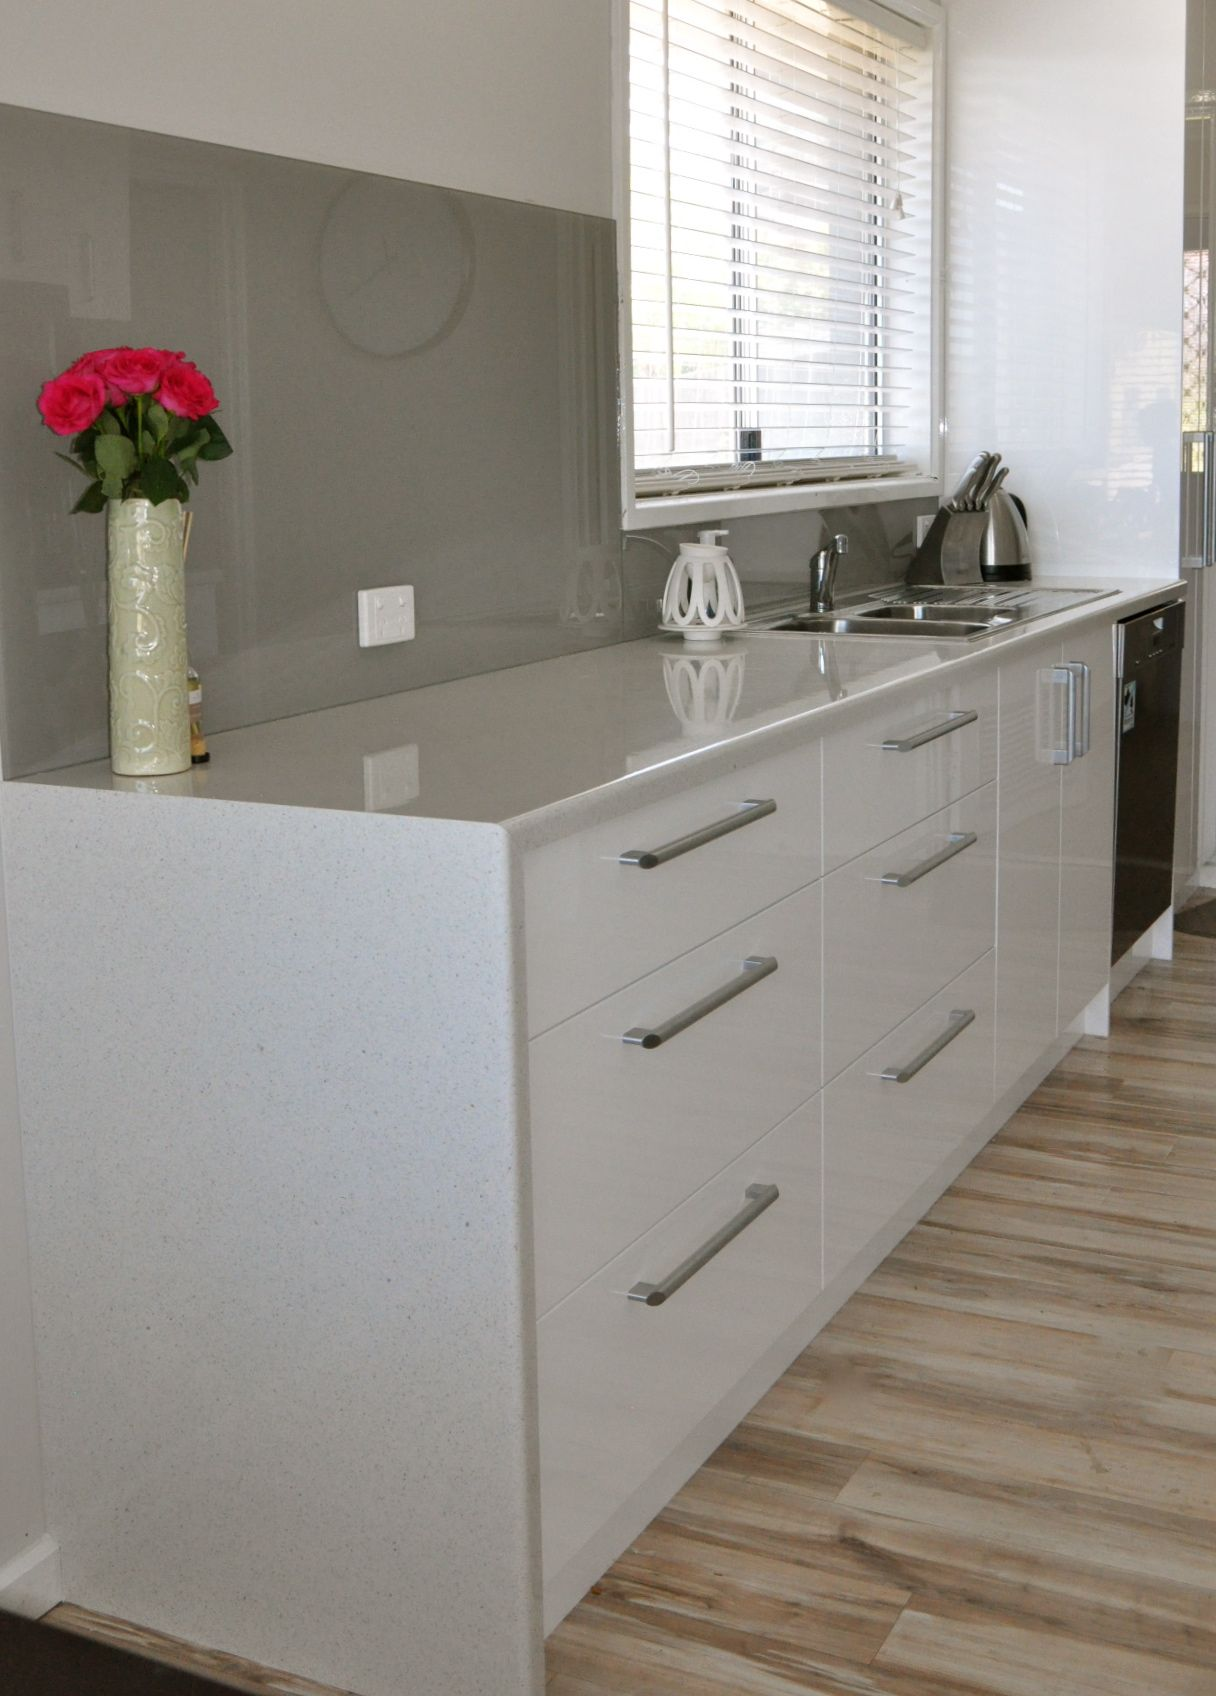 Waterfall edge with a laminate bench top - can be a more cost ...